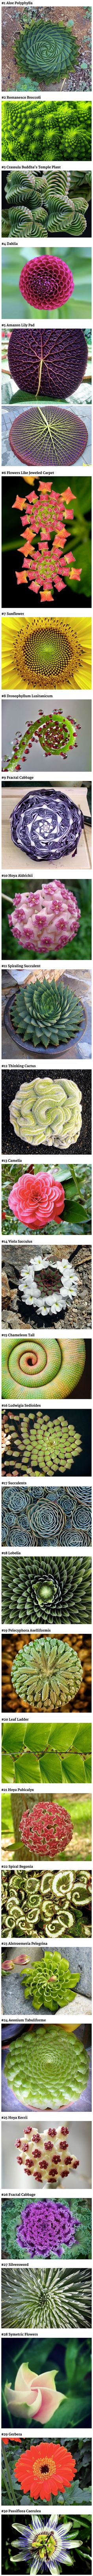 Who said math can't be interesting? Fractals like these can seem too perfect to be true, but they occur in nature and plants all the time and are examples of math, physics, and natural selection at work!